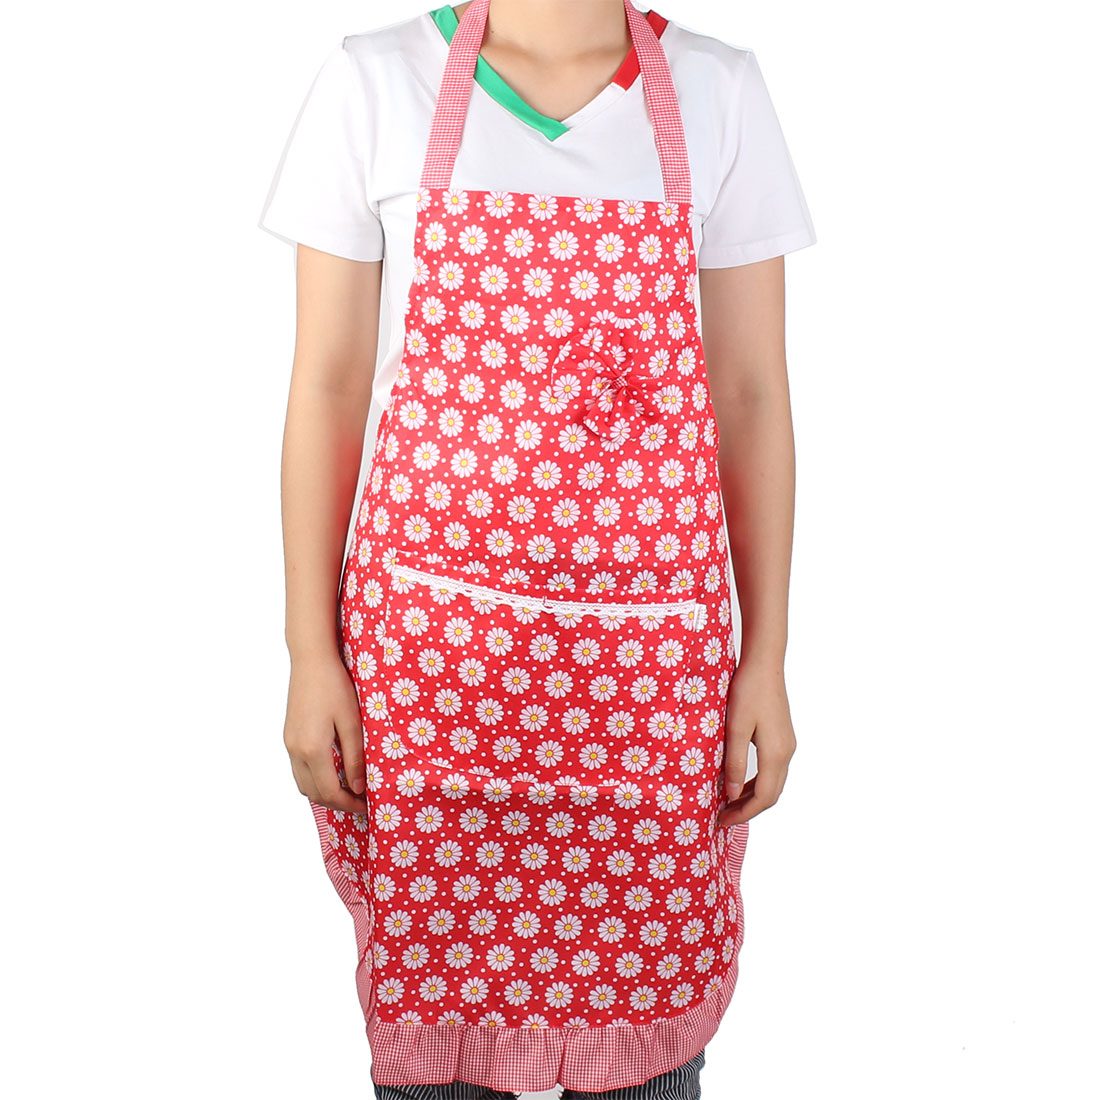 Chef Restaurant Kitchen Cooking Floral Printed Bow Apron Self Tie Bib Pocket Dress Red White